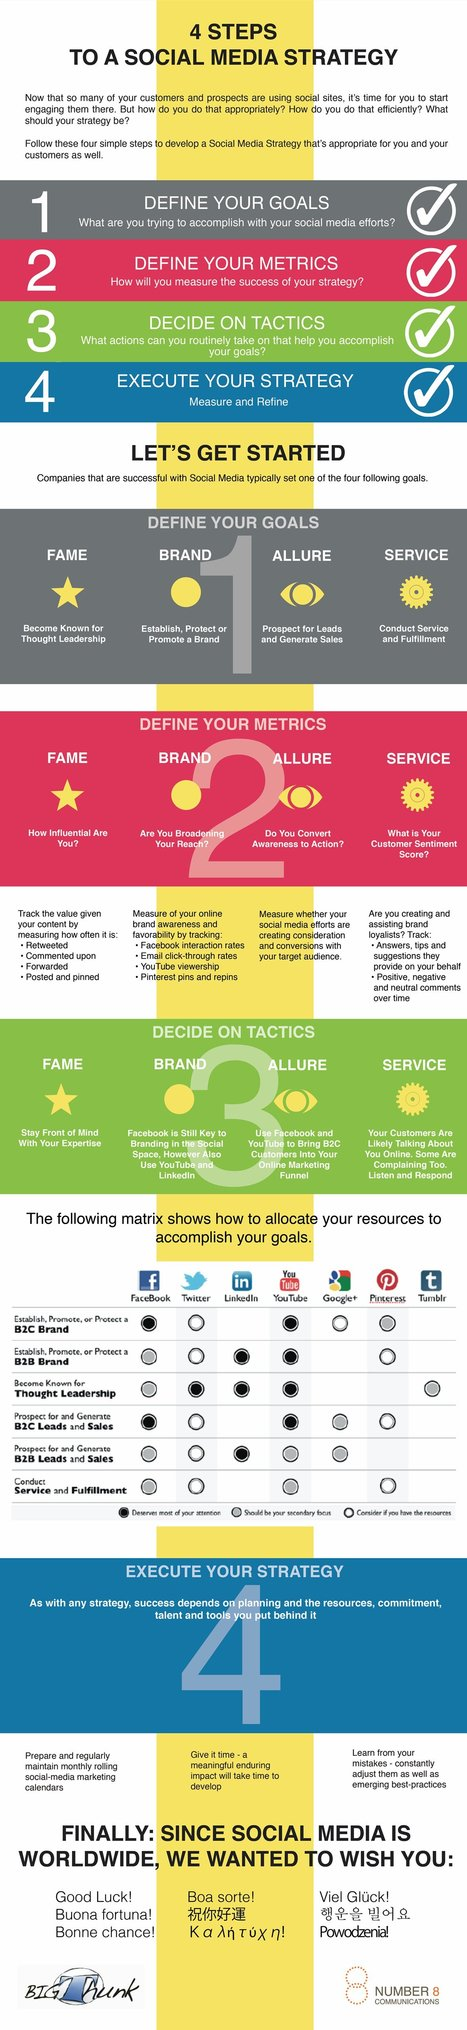 Infographic: The 4 Steps to Social Media Marketing | Market to real people | Scoop.it